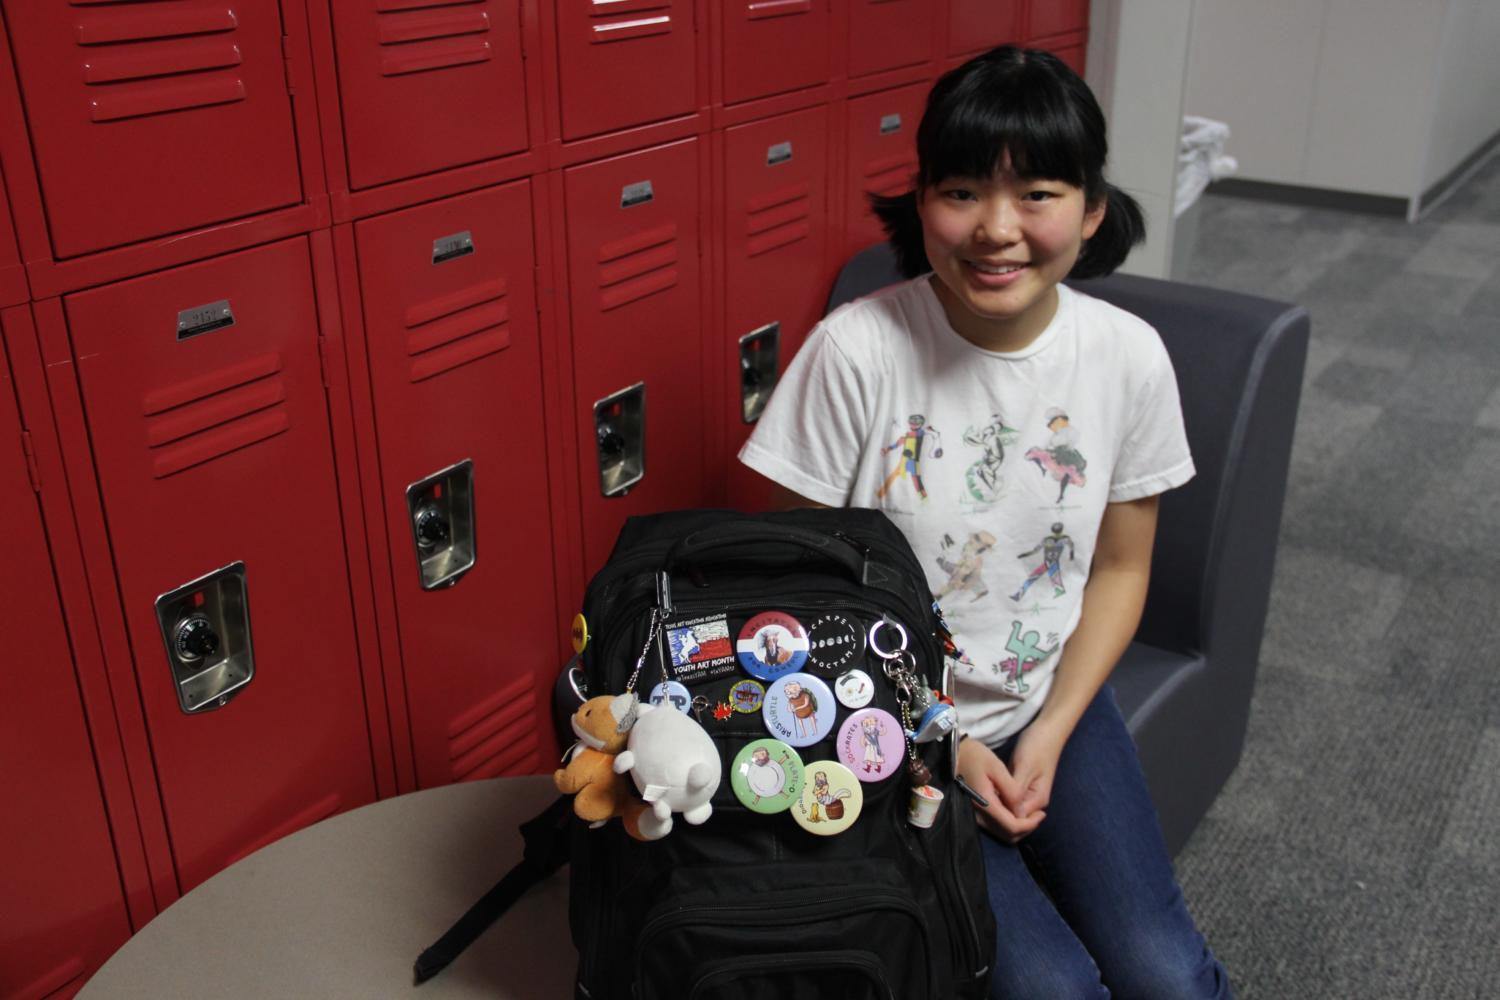 Coppell+High+School+sophomore+Karina+Teruya+displays+her+buttons%2C+which+feature+different+philosophers+and+puns%2C+on+her+backpack.+She+raised+approximately+%24200+in+funds+for+Latin+competitions+and+spread+awareness+about+Latin+III+and+IV+classes+being+cut+next+year.+